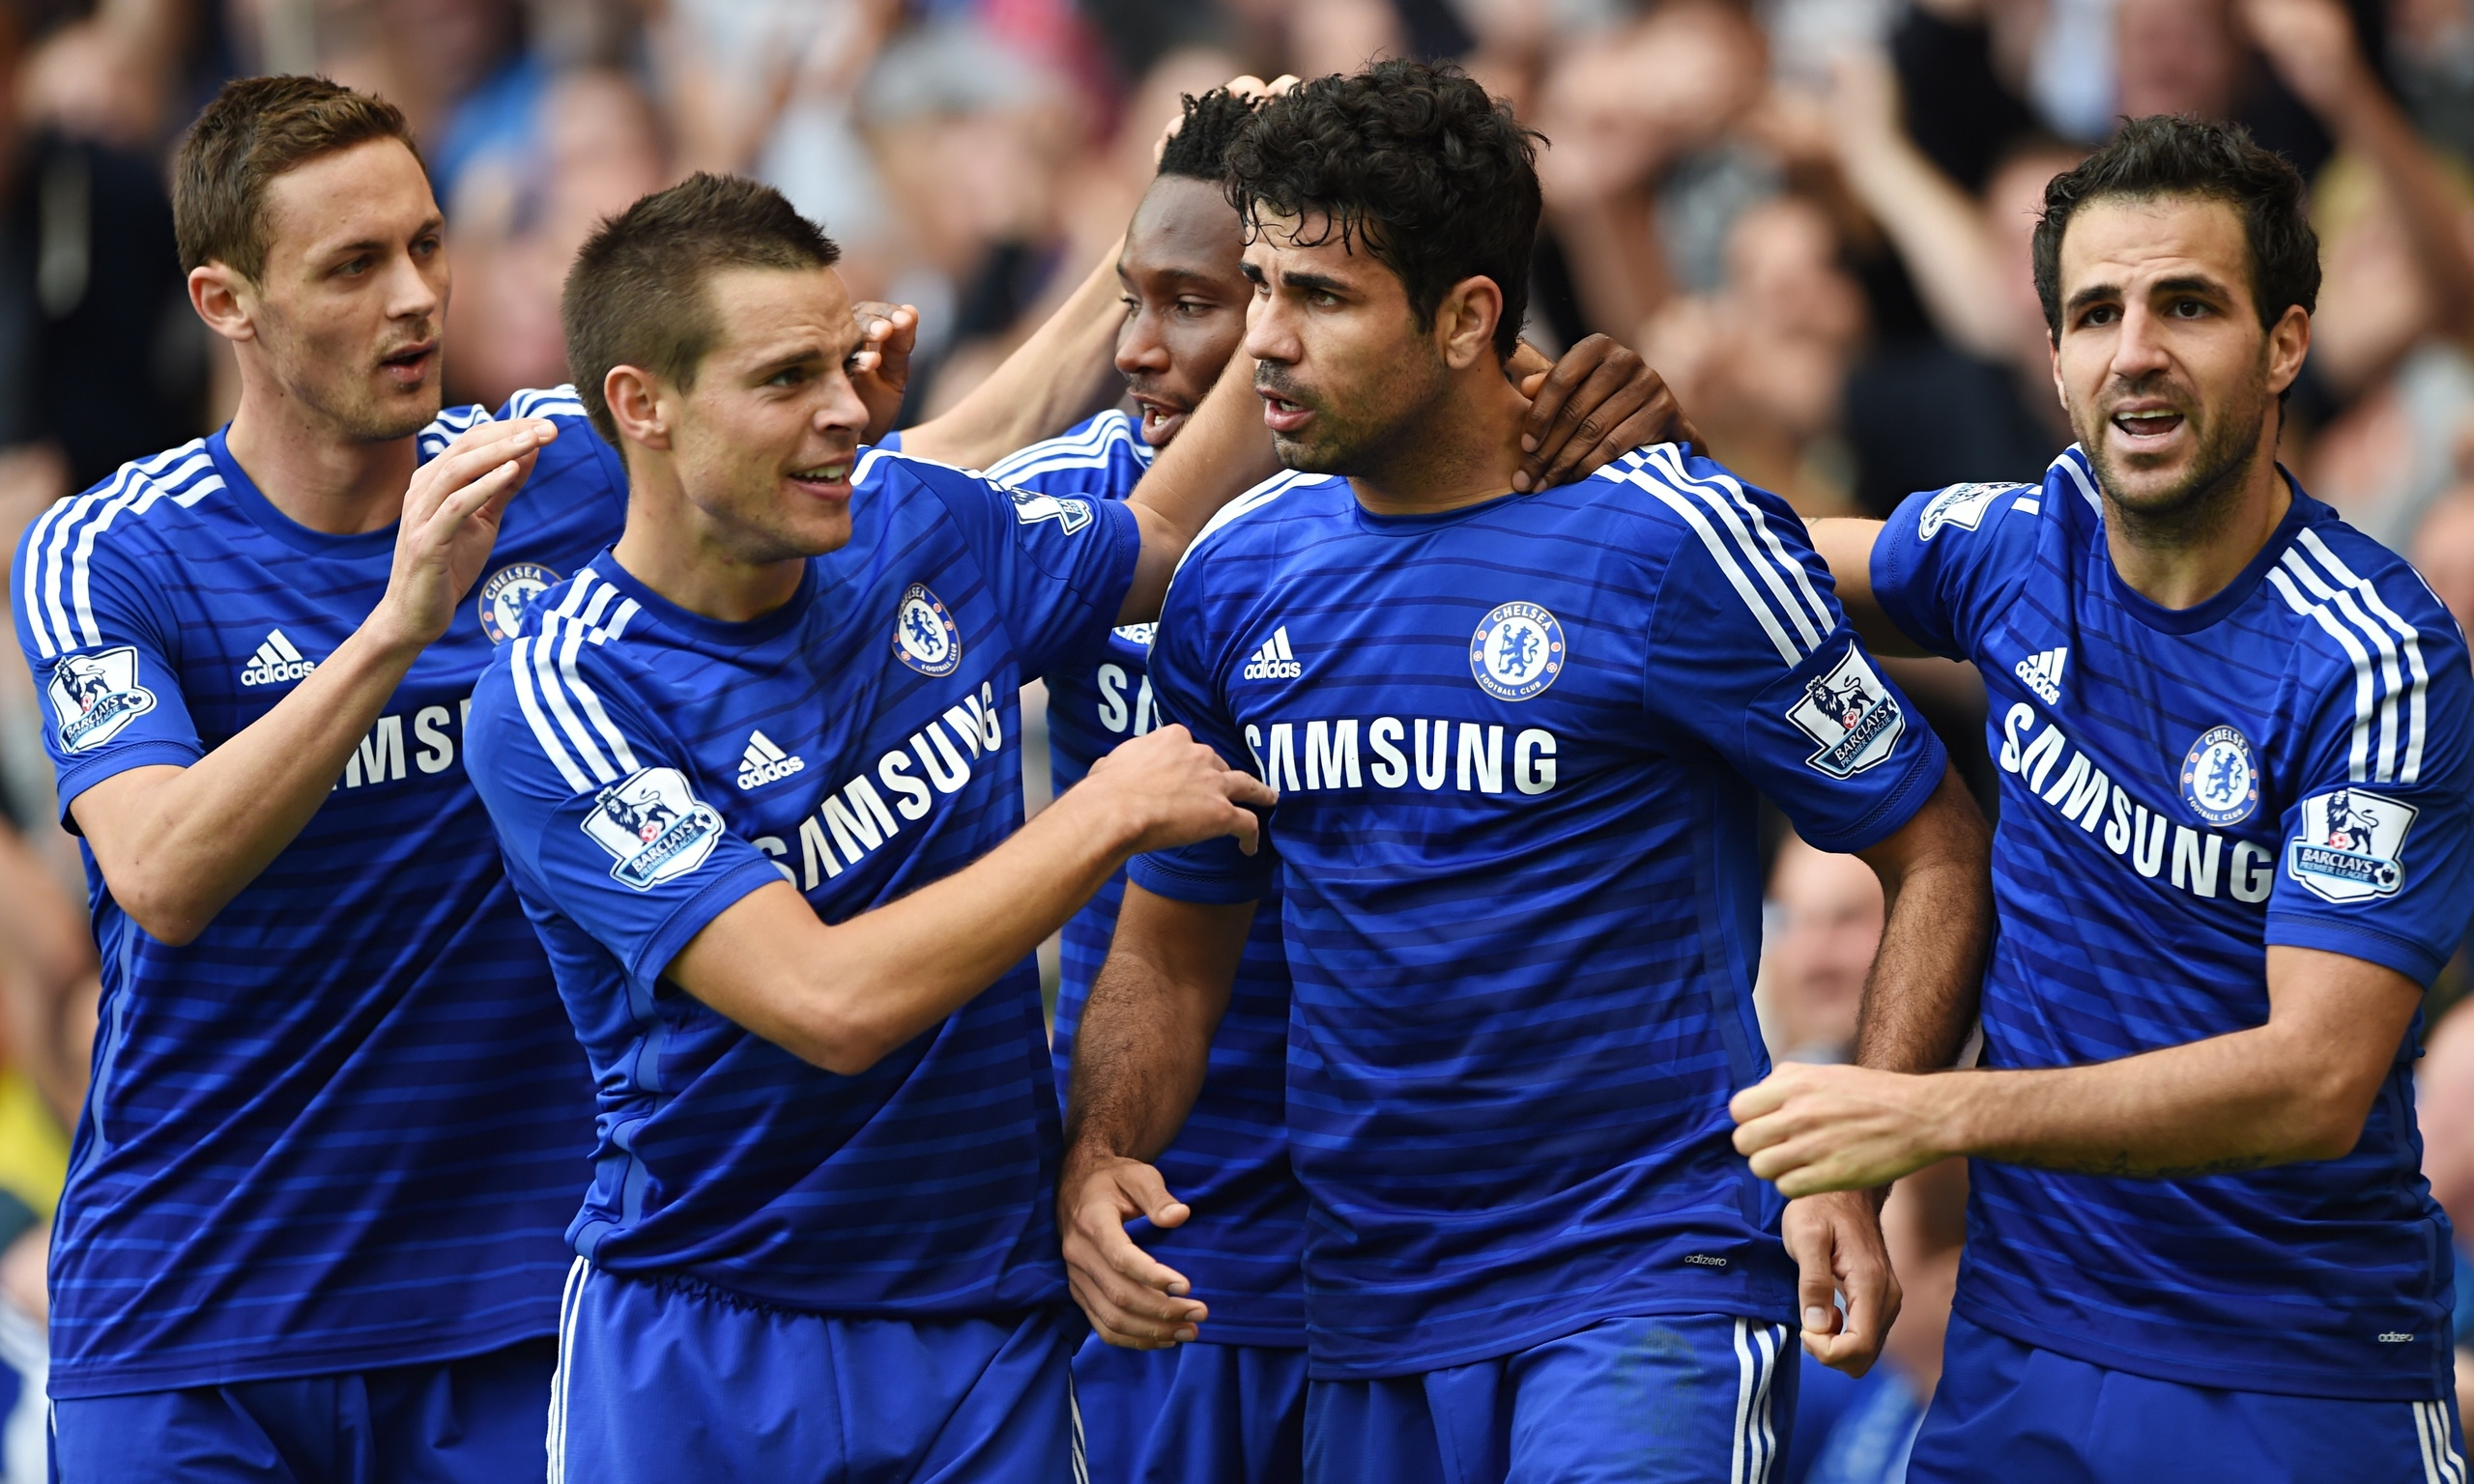 Get the latest Chelsea news photos rankings lists and more on Bleacher Report